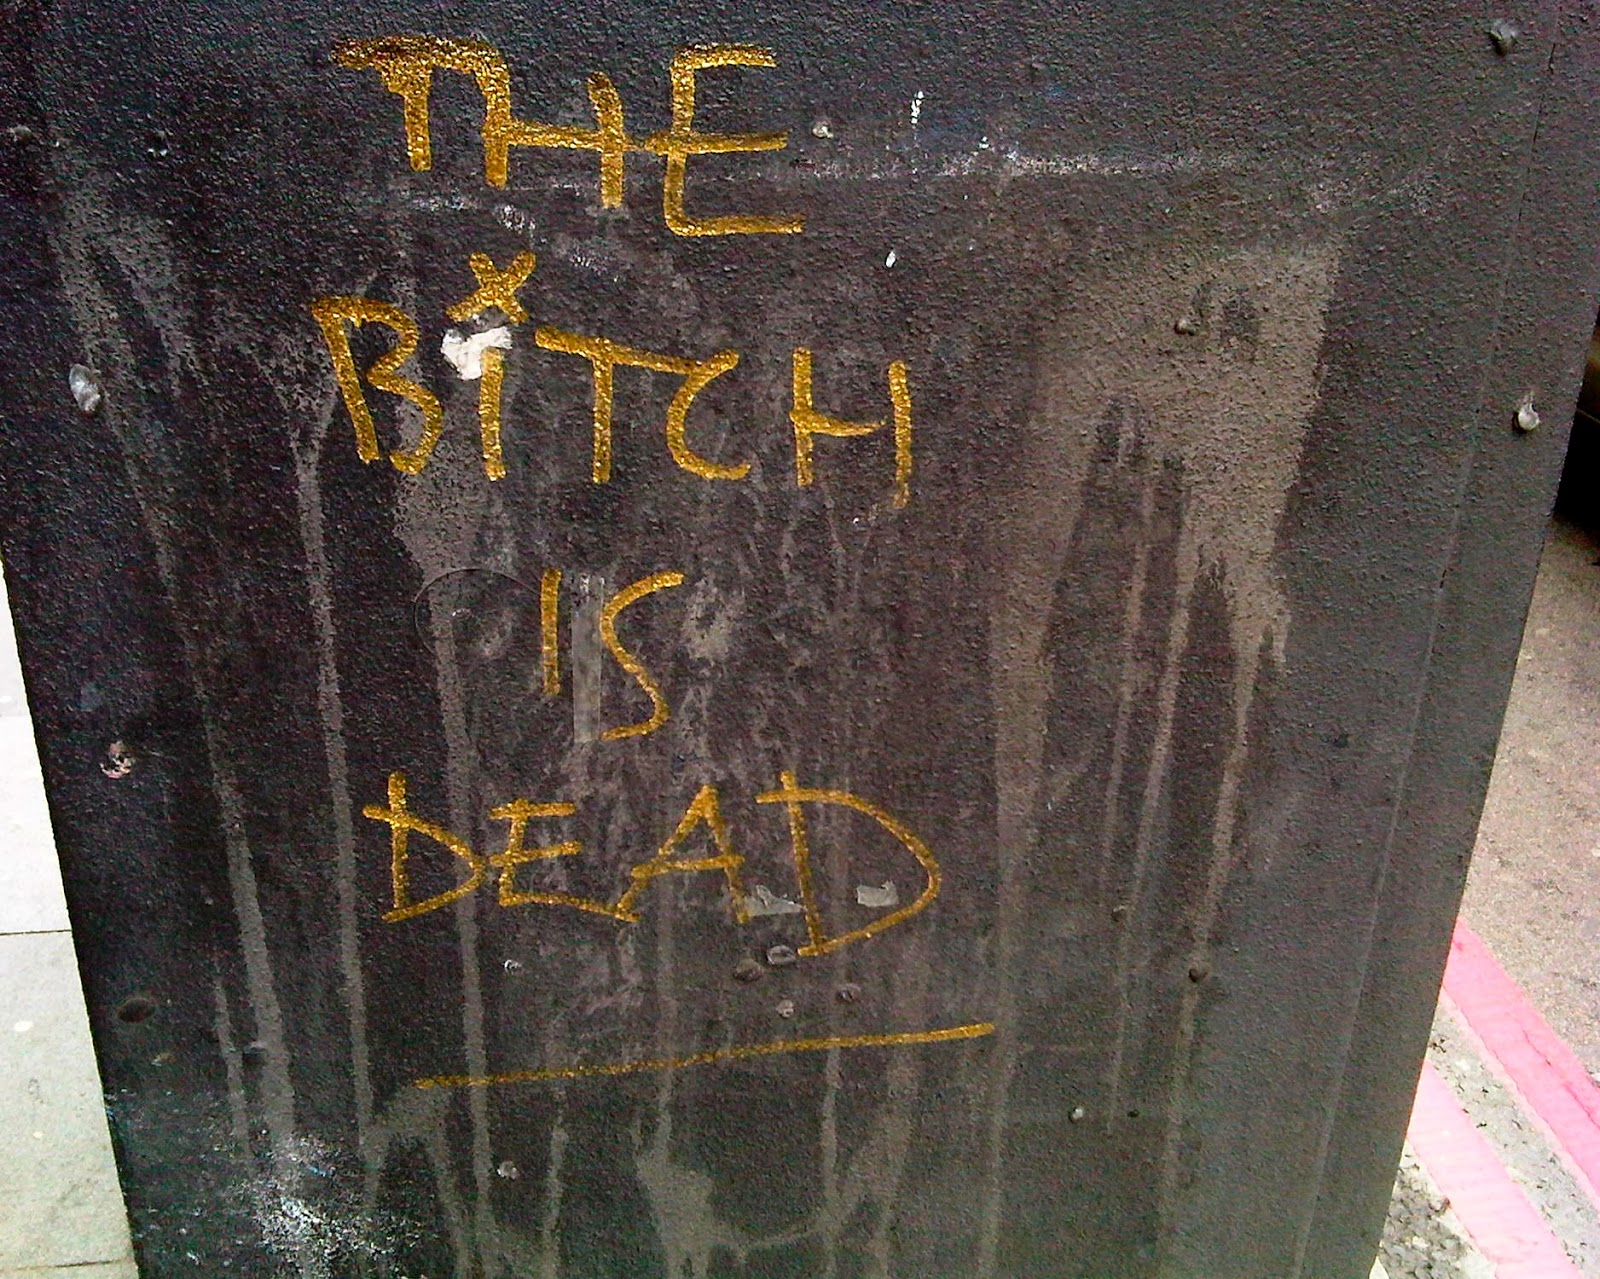 Anti-Thtacher graffiti appeared all over London the day former PM Margaret Thatcher died: this one seen in Brixton, London SW2.